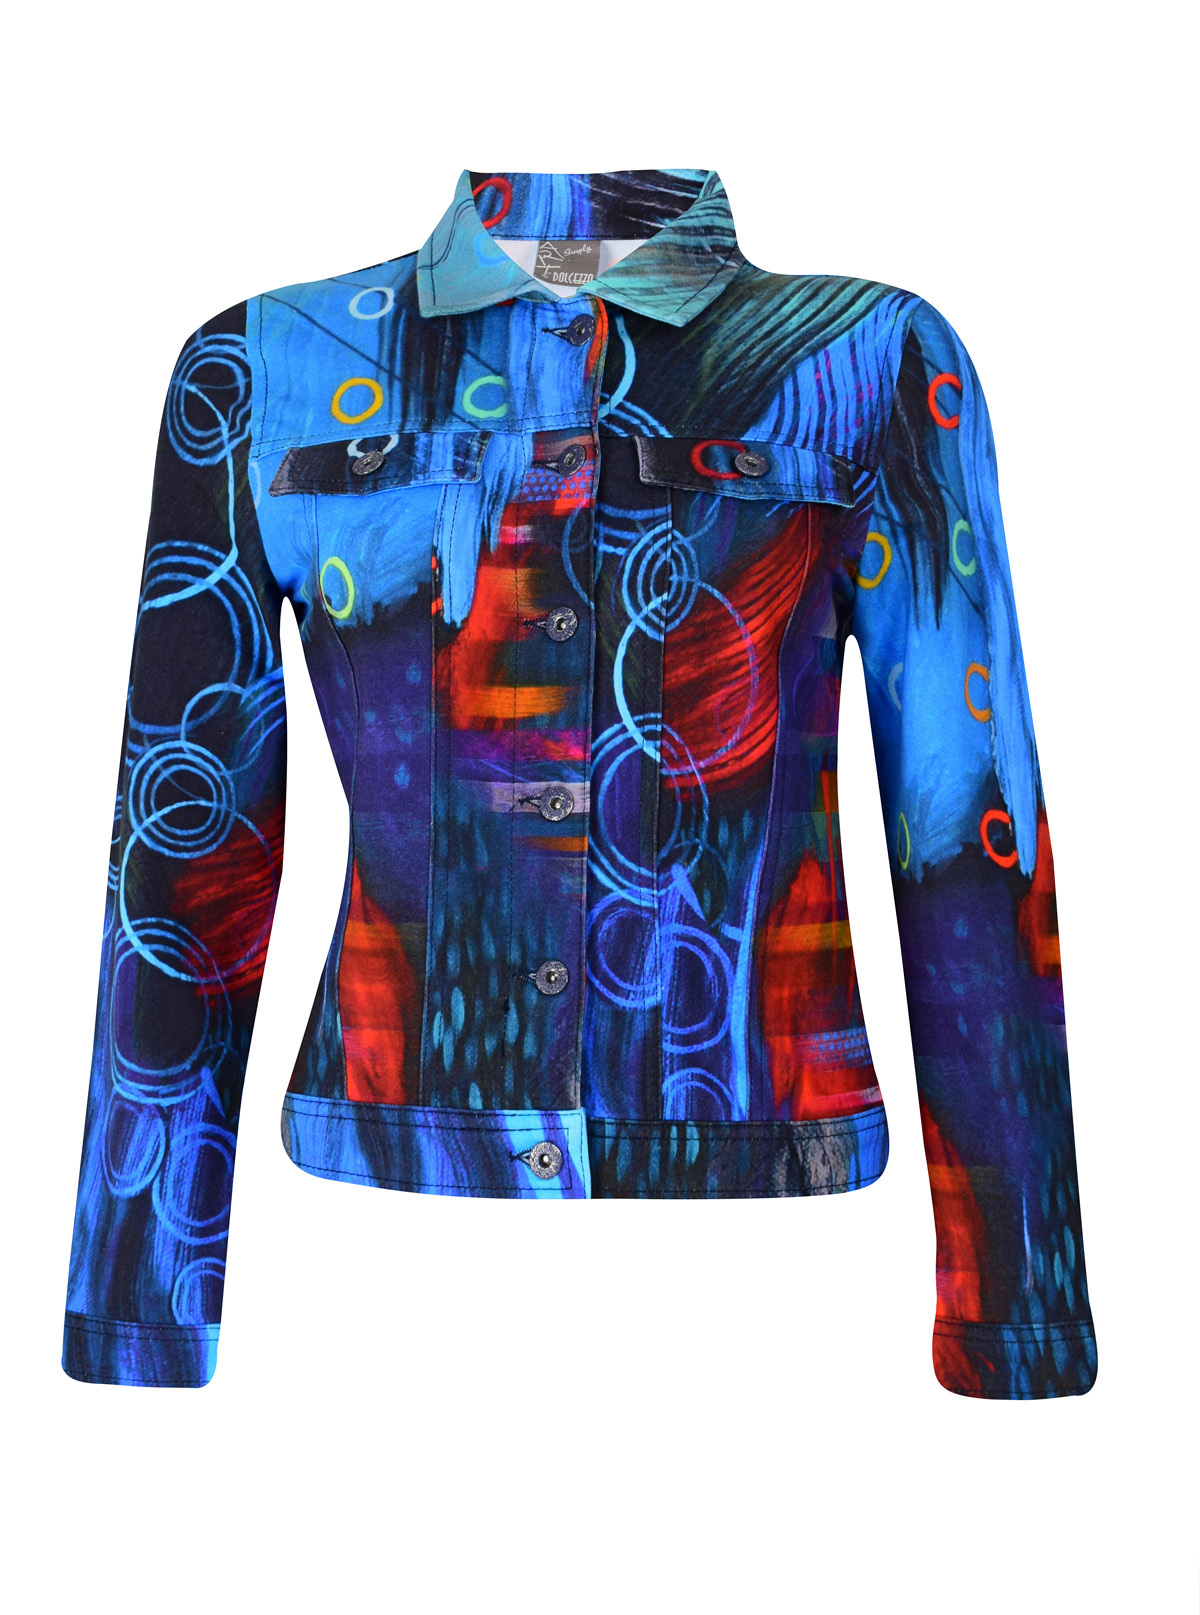 Simply Art Dolcezza: Distilling Colors Of Beauty Abstract Art Jacket SOLD OUT